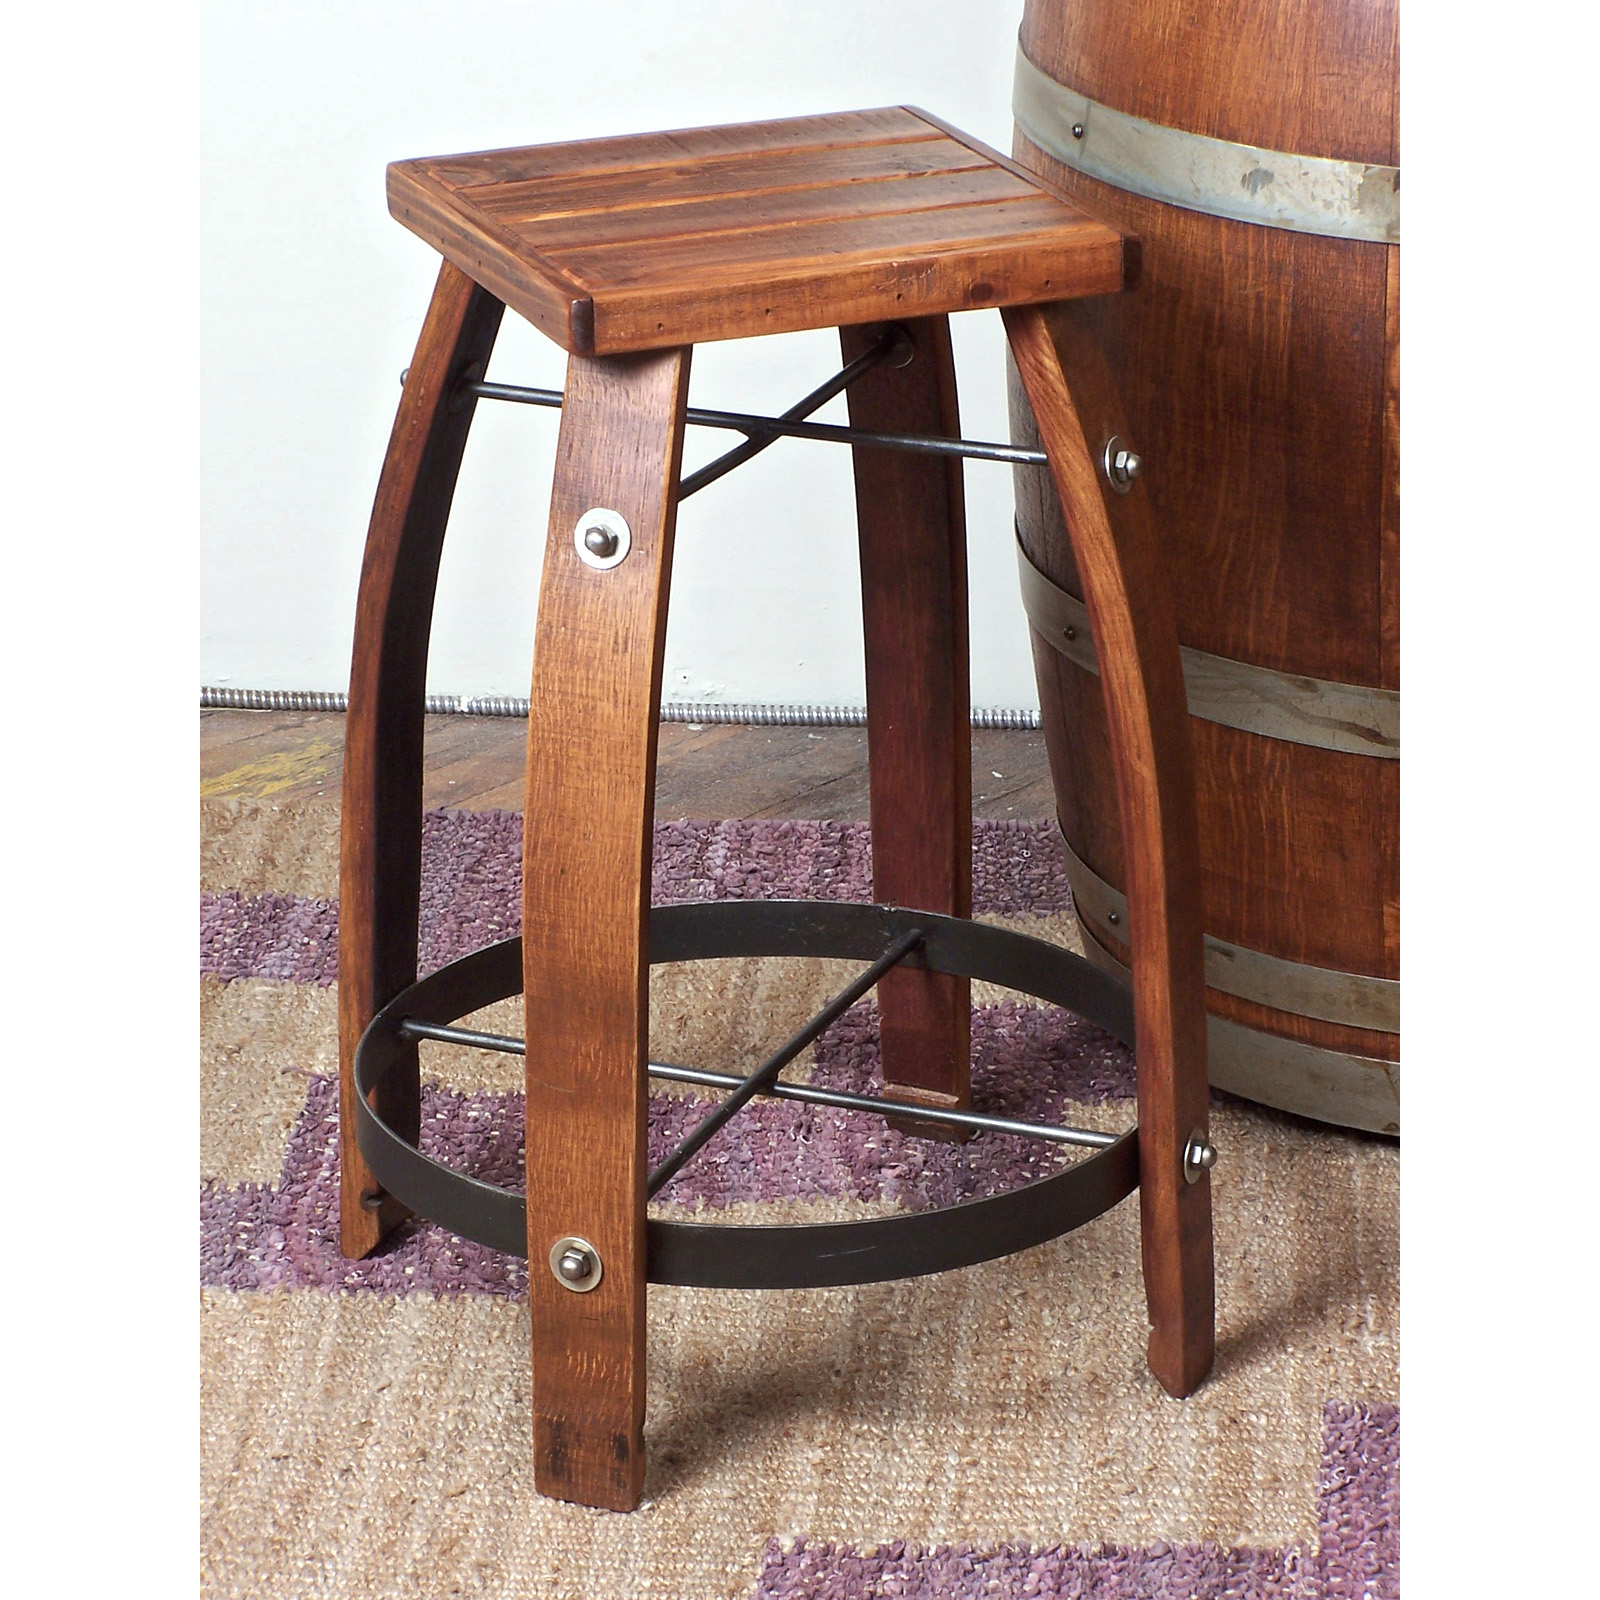 2 Day Designs Reclaimed 24-Inch Stave Wine Barrel Counter Stool with Wood Seat | Hayneedle  sc 1 st  Hayneedle & 2 Day Designs Reclaimed 24-Inch Stave Wine Barrel Counter Stool ... islam-shia.org